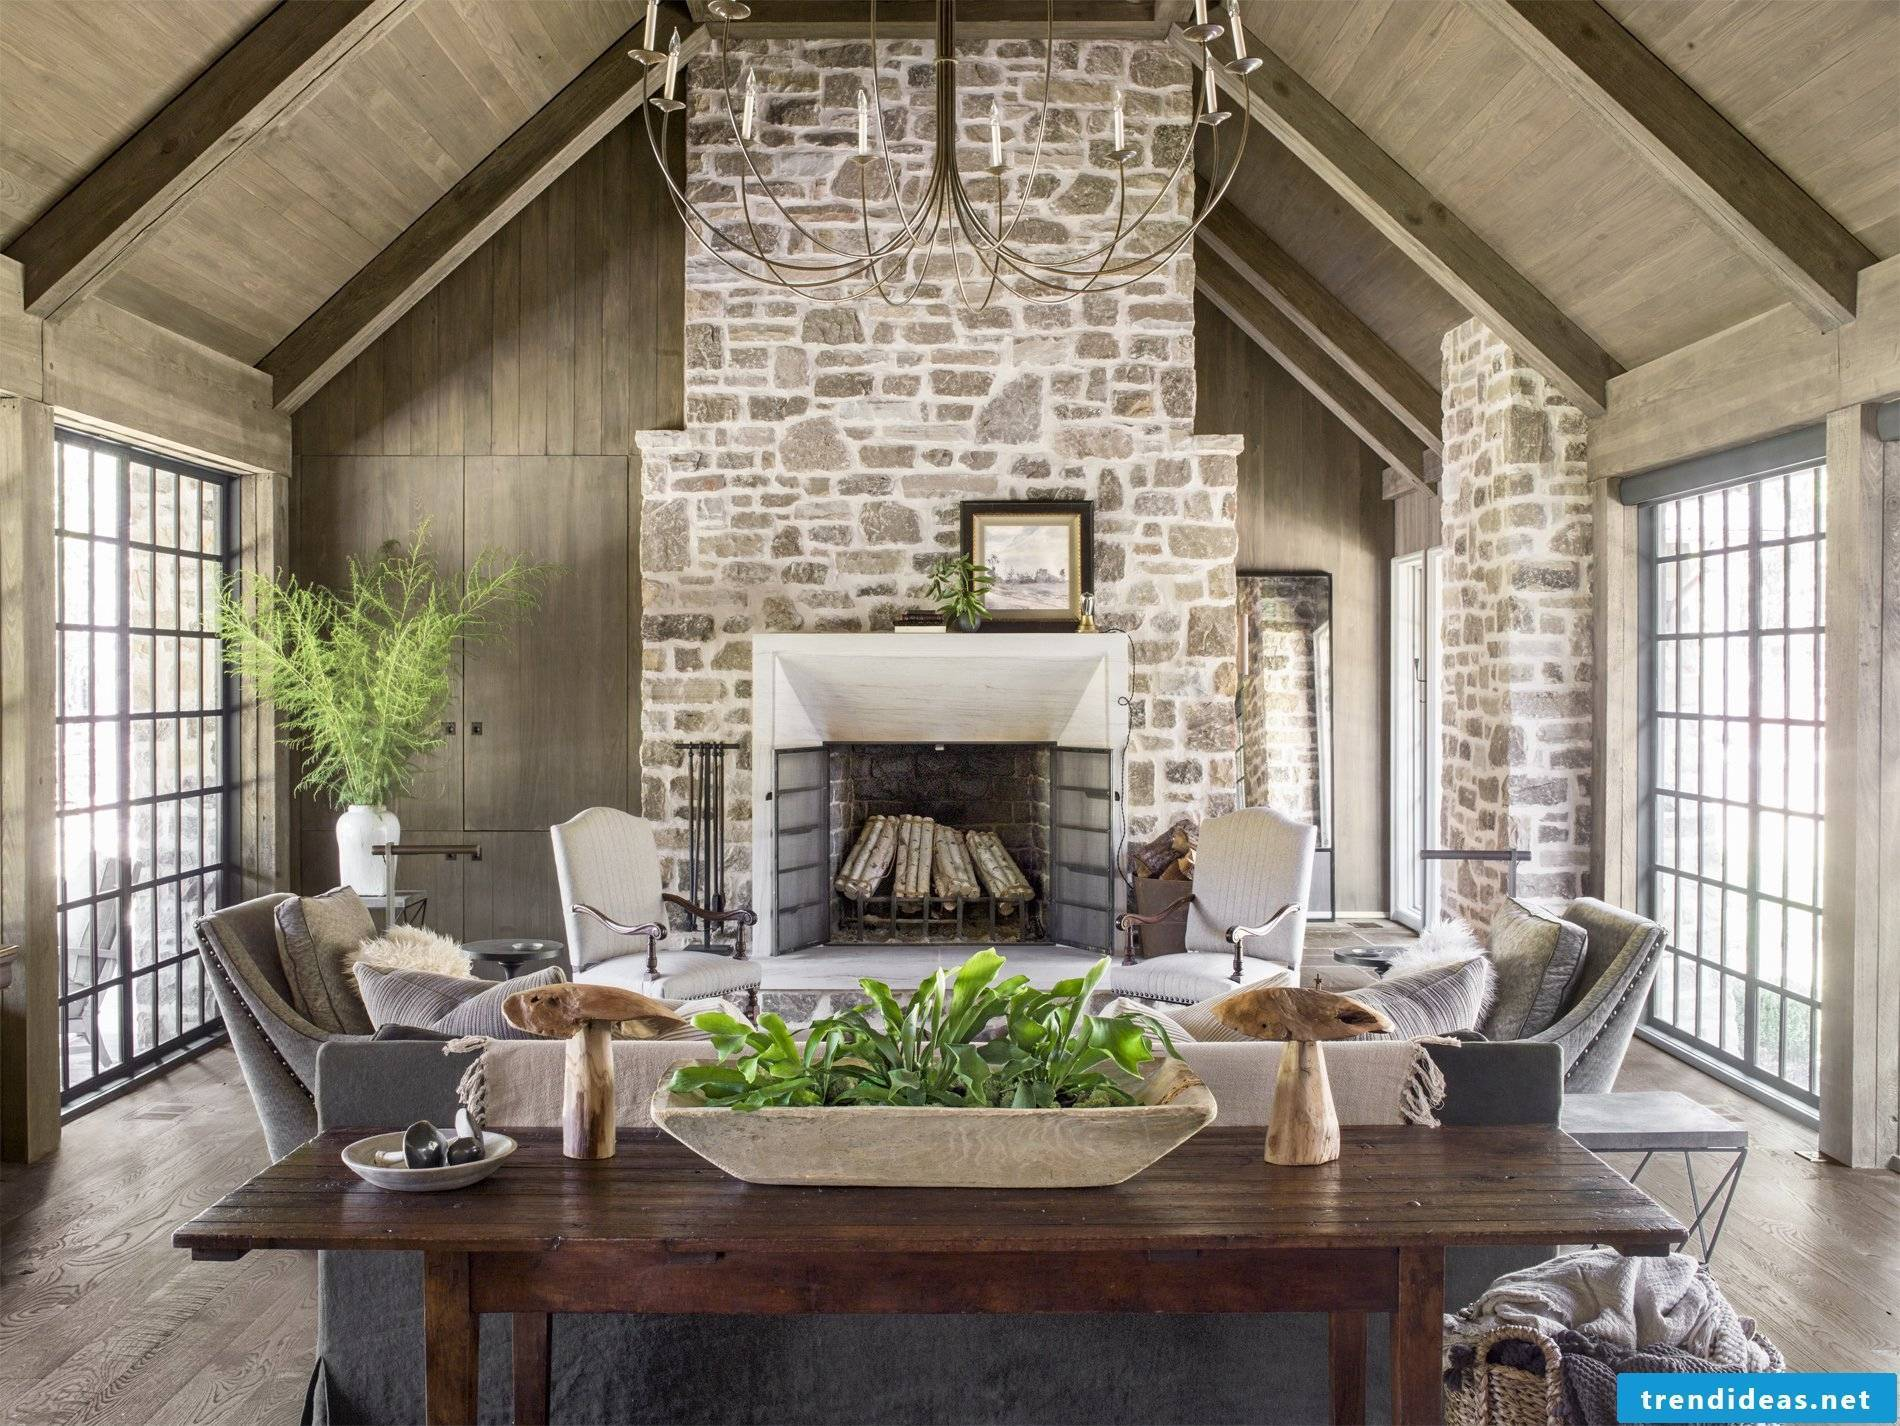 Many great home decor tips and tricks